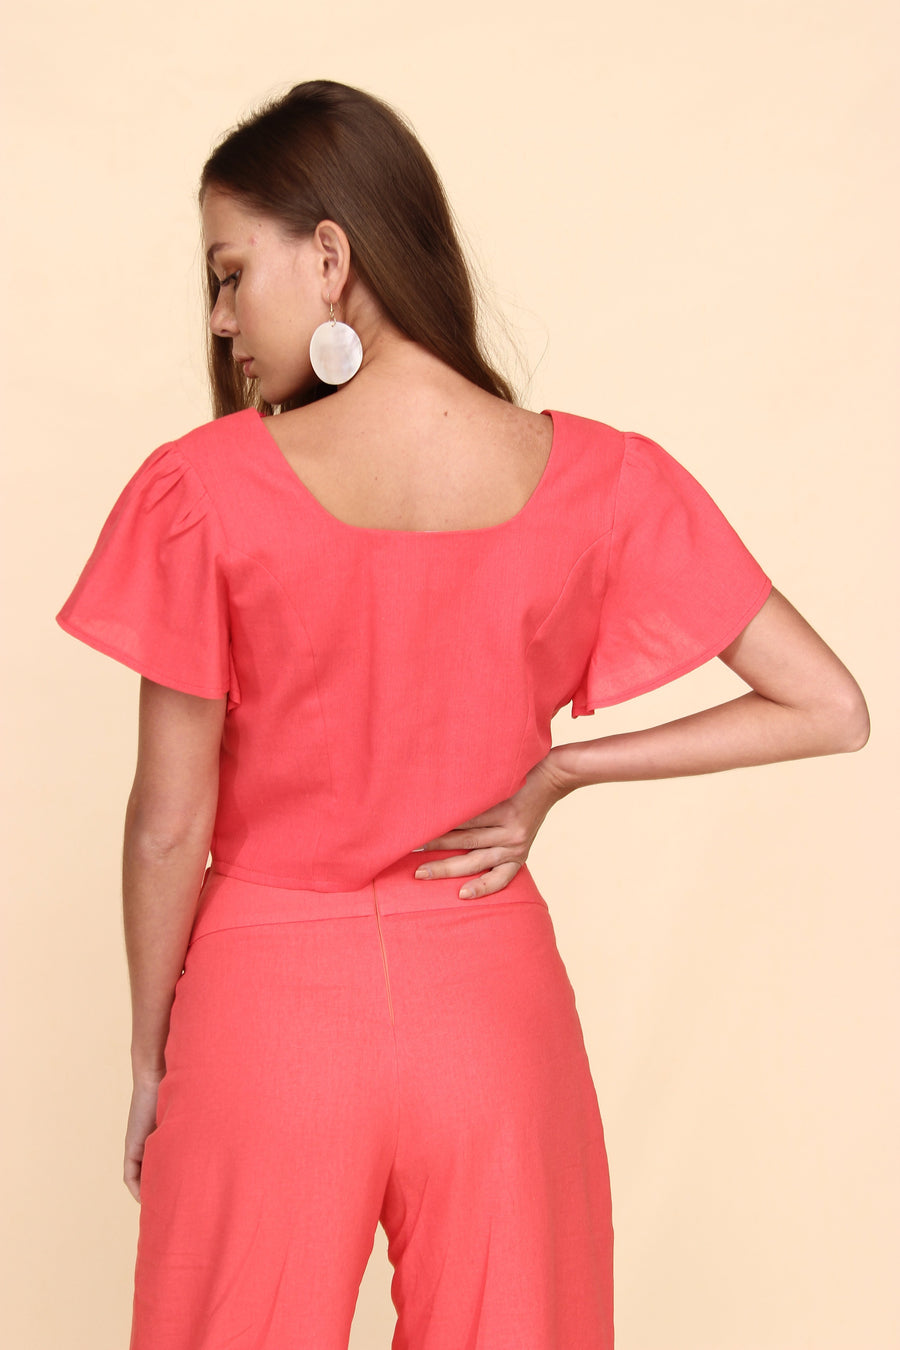 H Apparel Ropa S / Coral Blusa crop top de lino